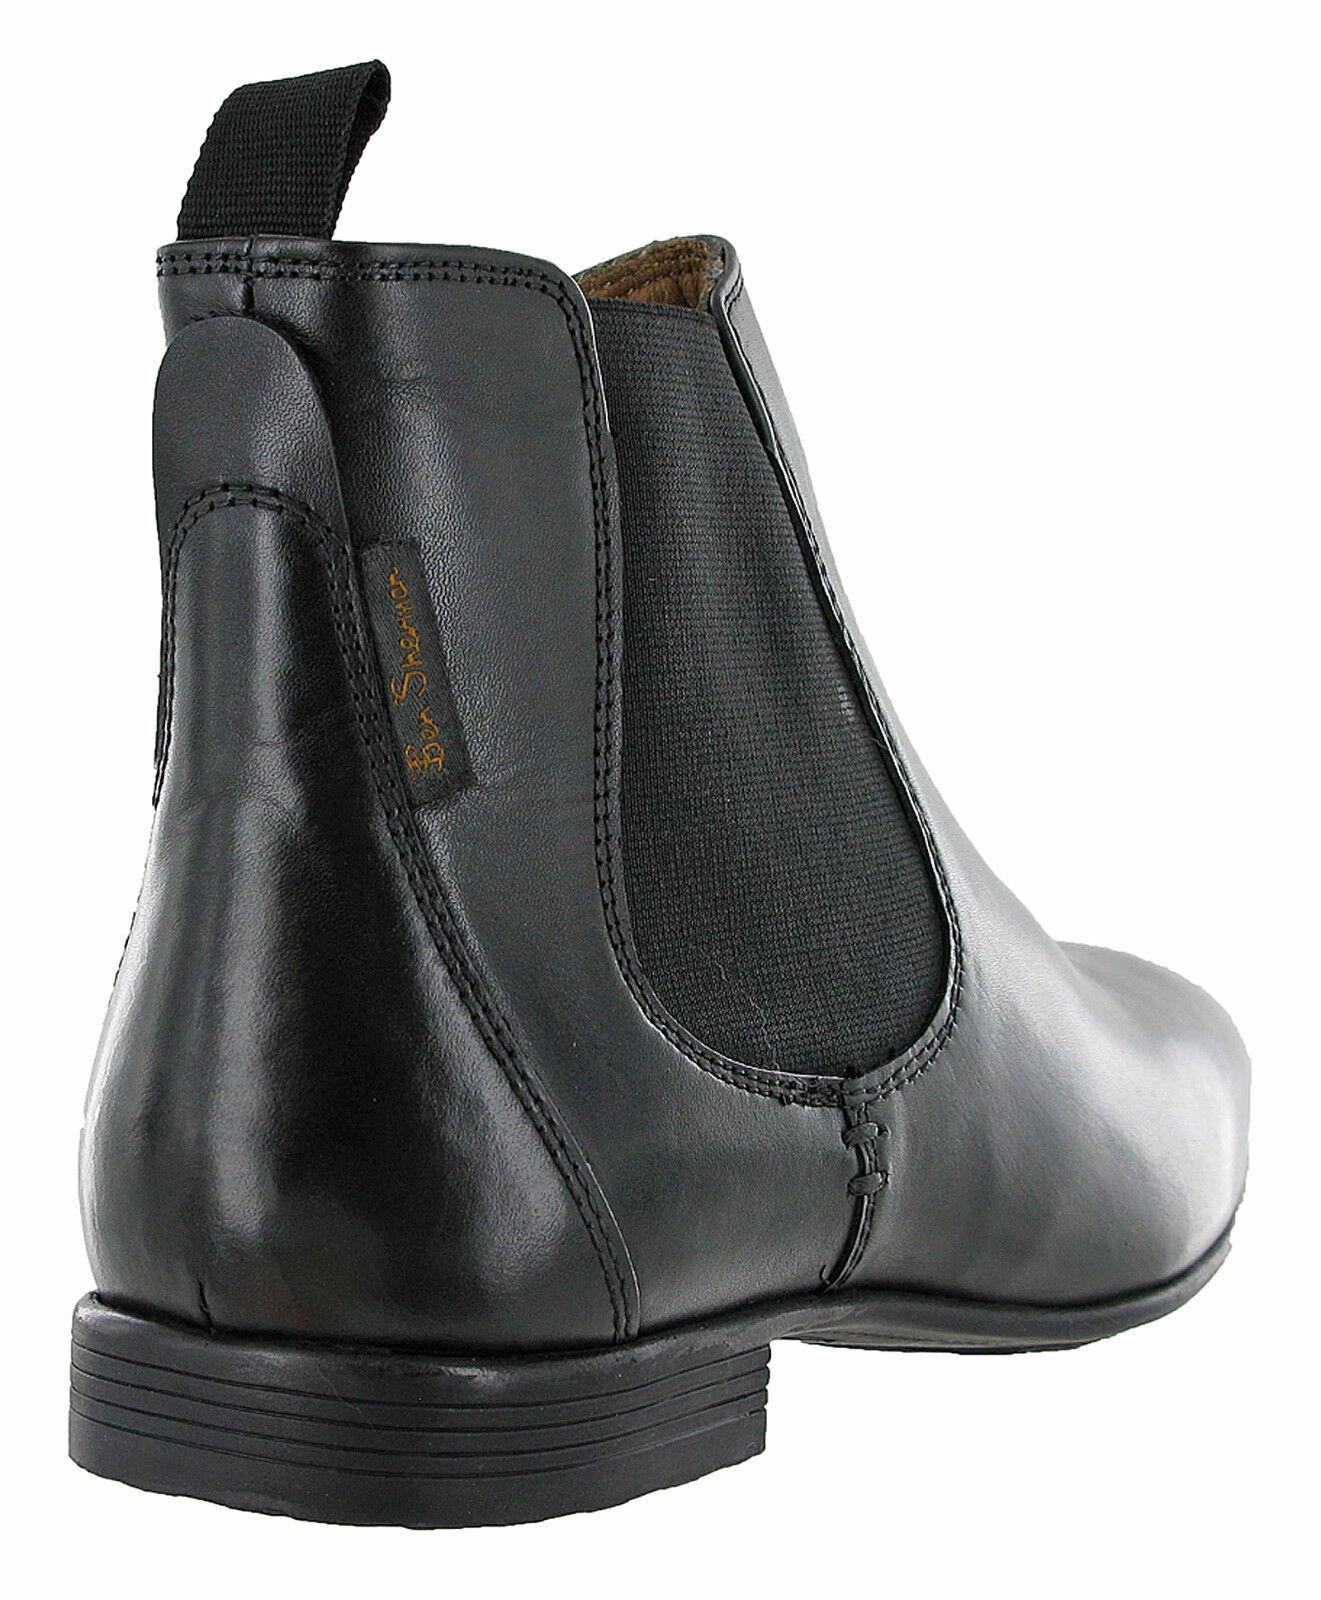 f5b740642d5 Details about Ben Sherman Chelsea Boots Leather Mens Archibald Smooth Ankle  Pull On UK 7-11